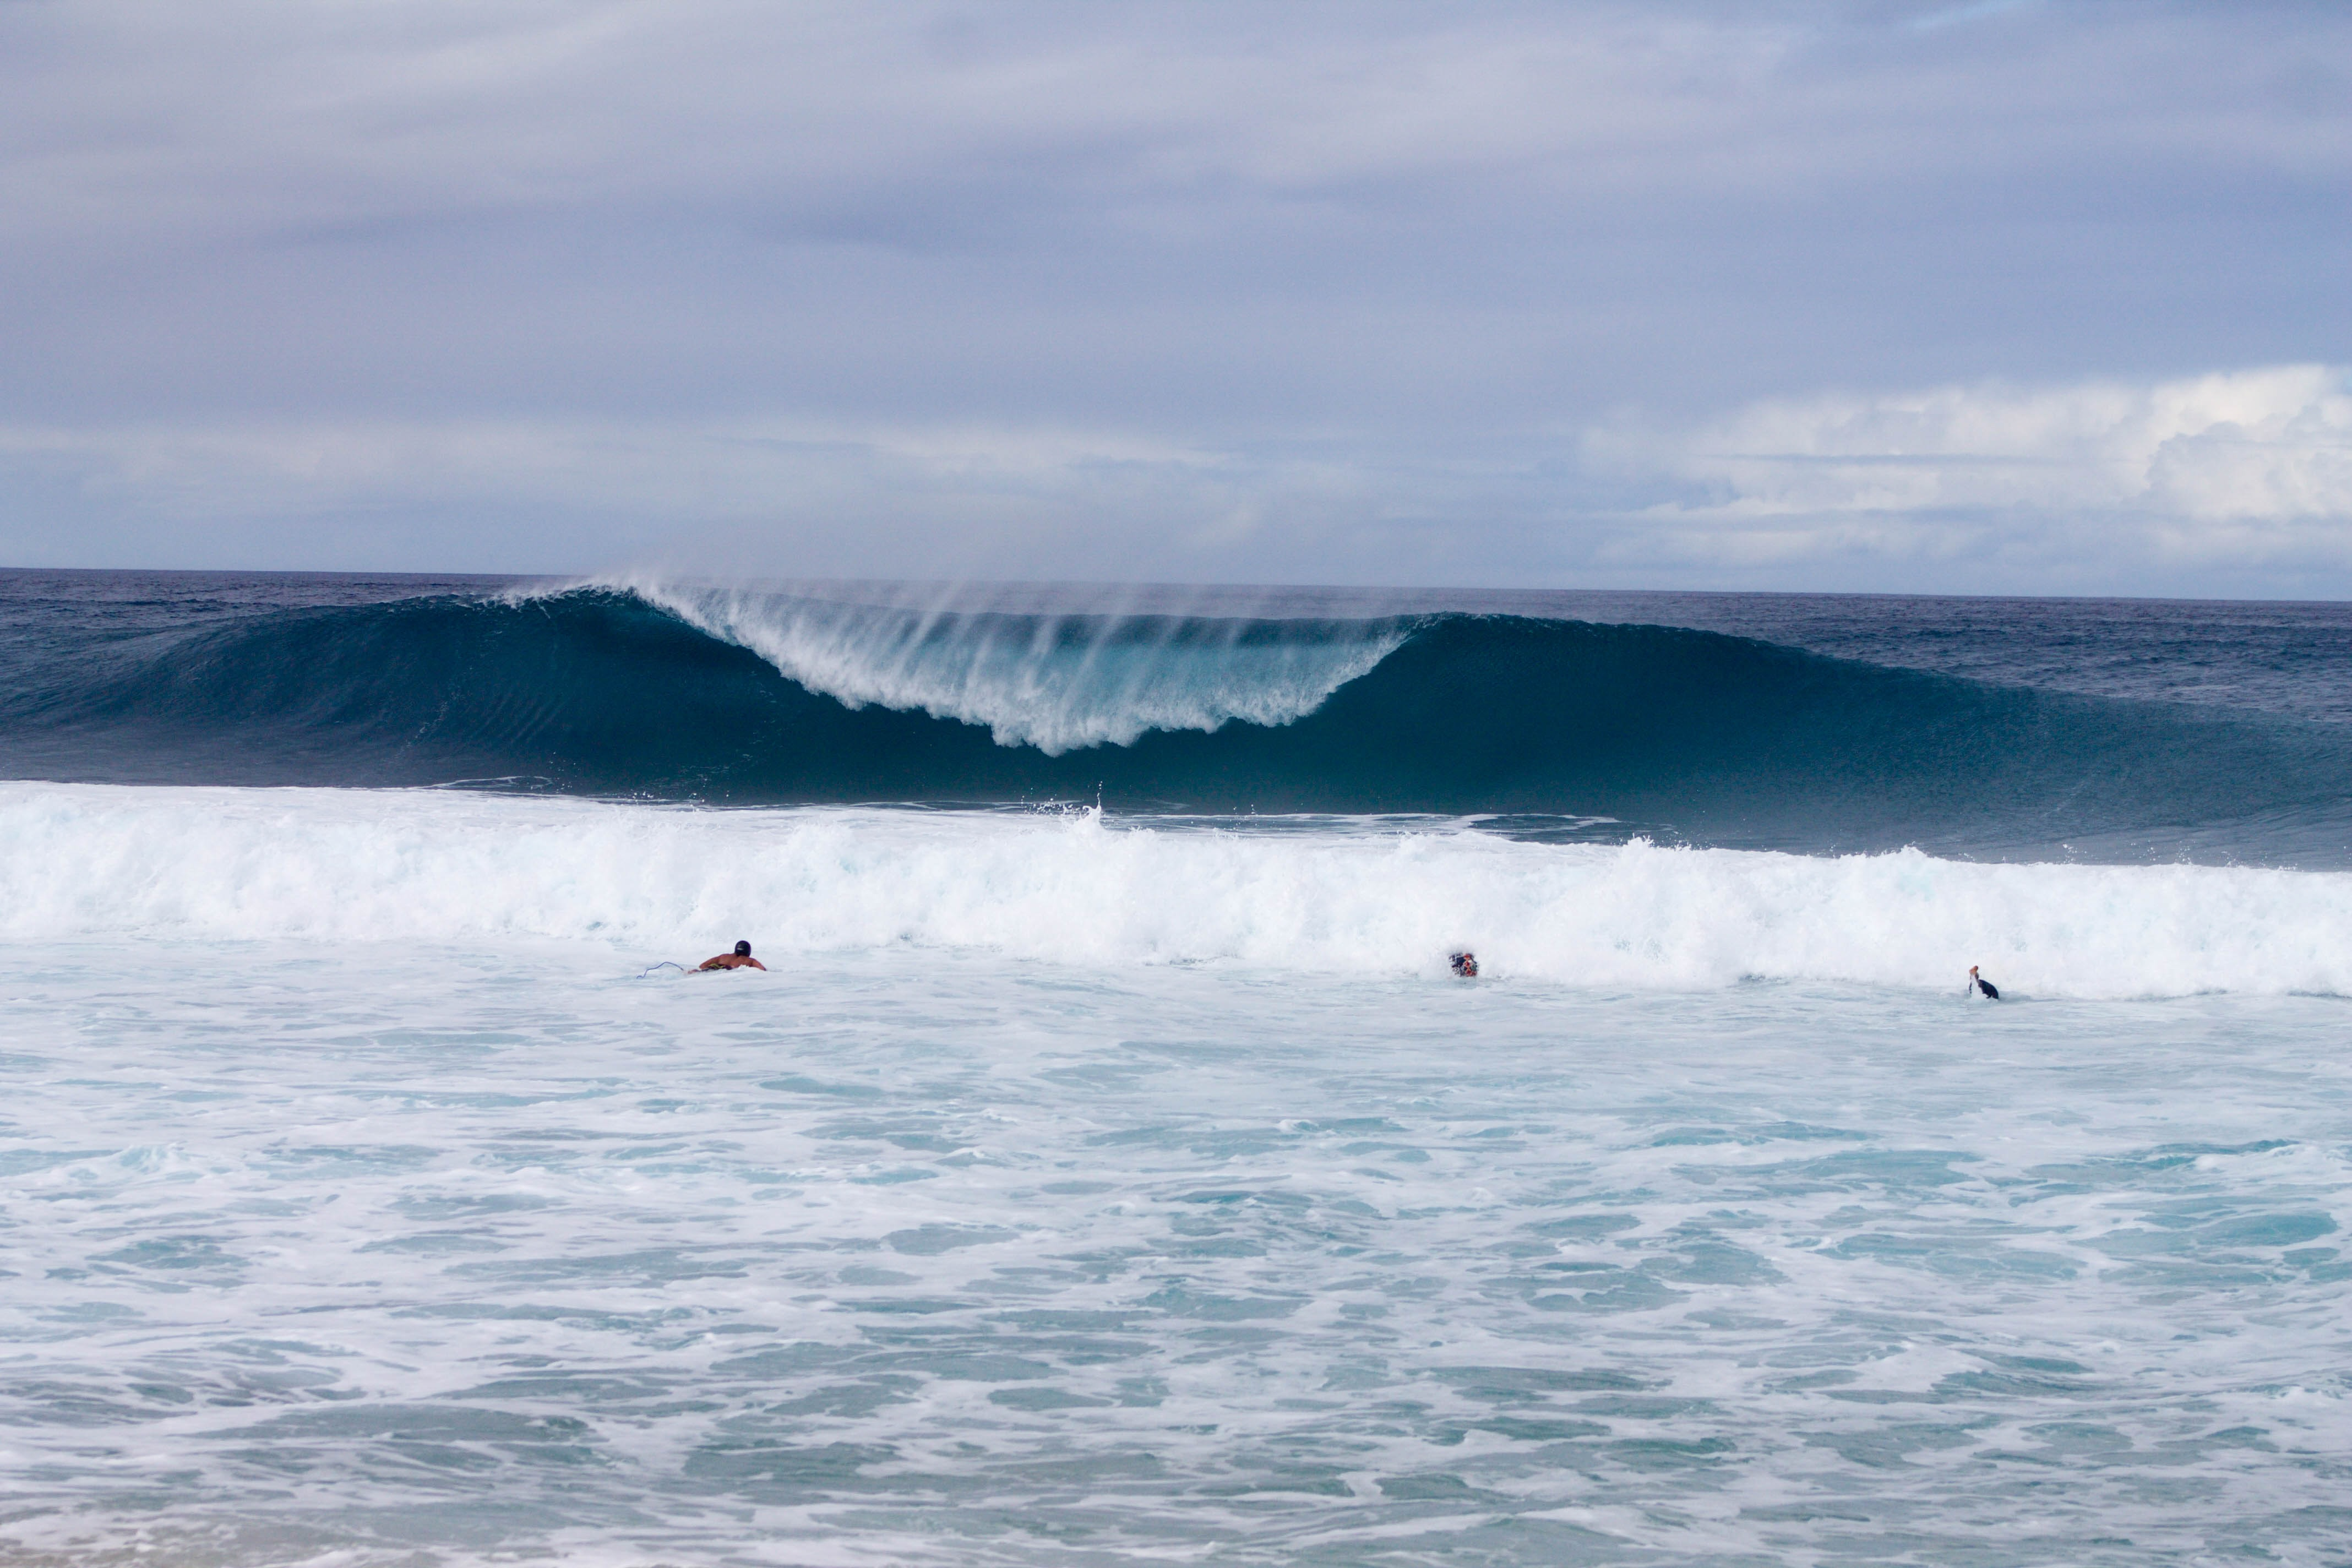 Large waves coming in to shore in Hawaii.